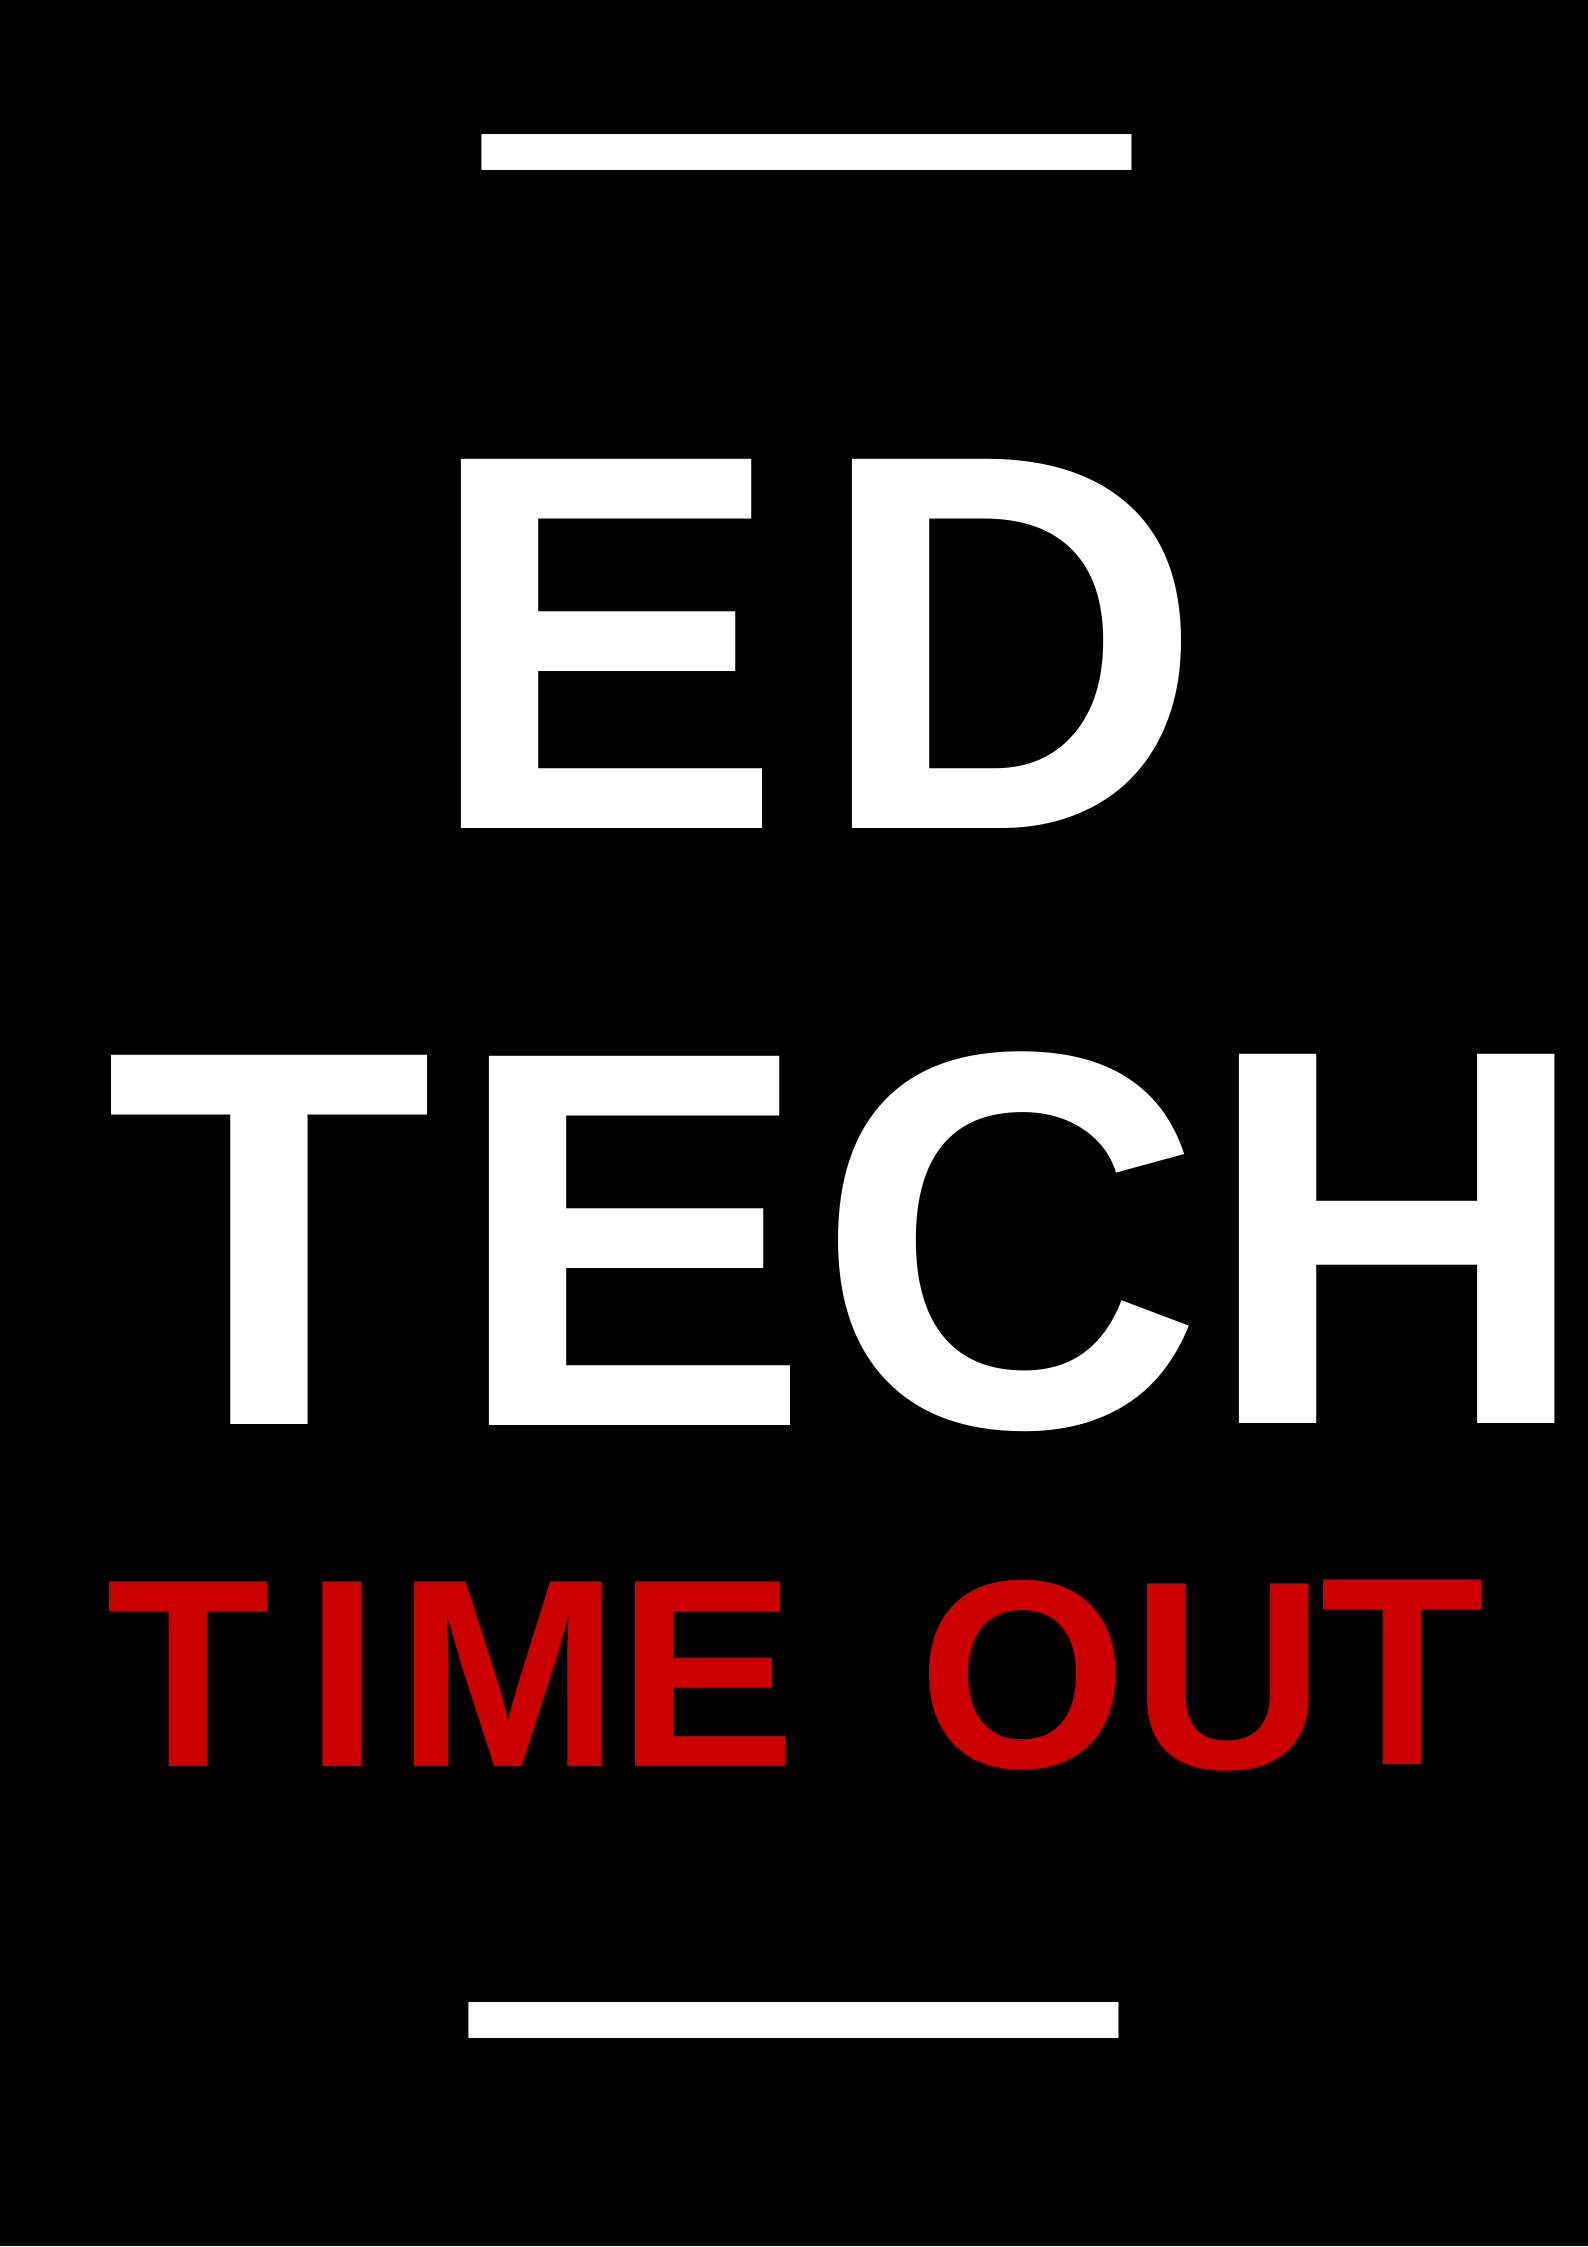 About Edtechtimeout